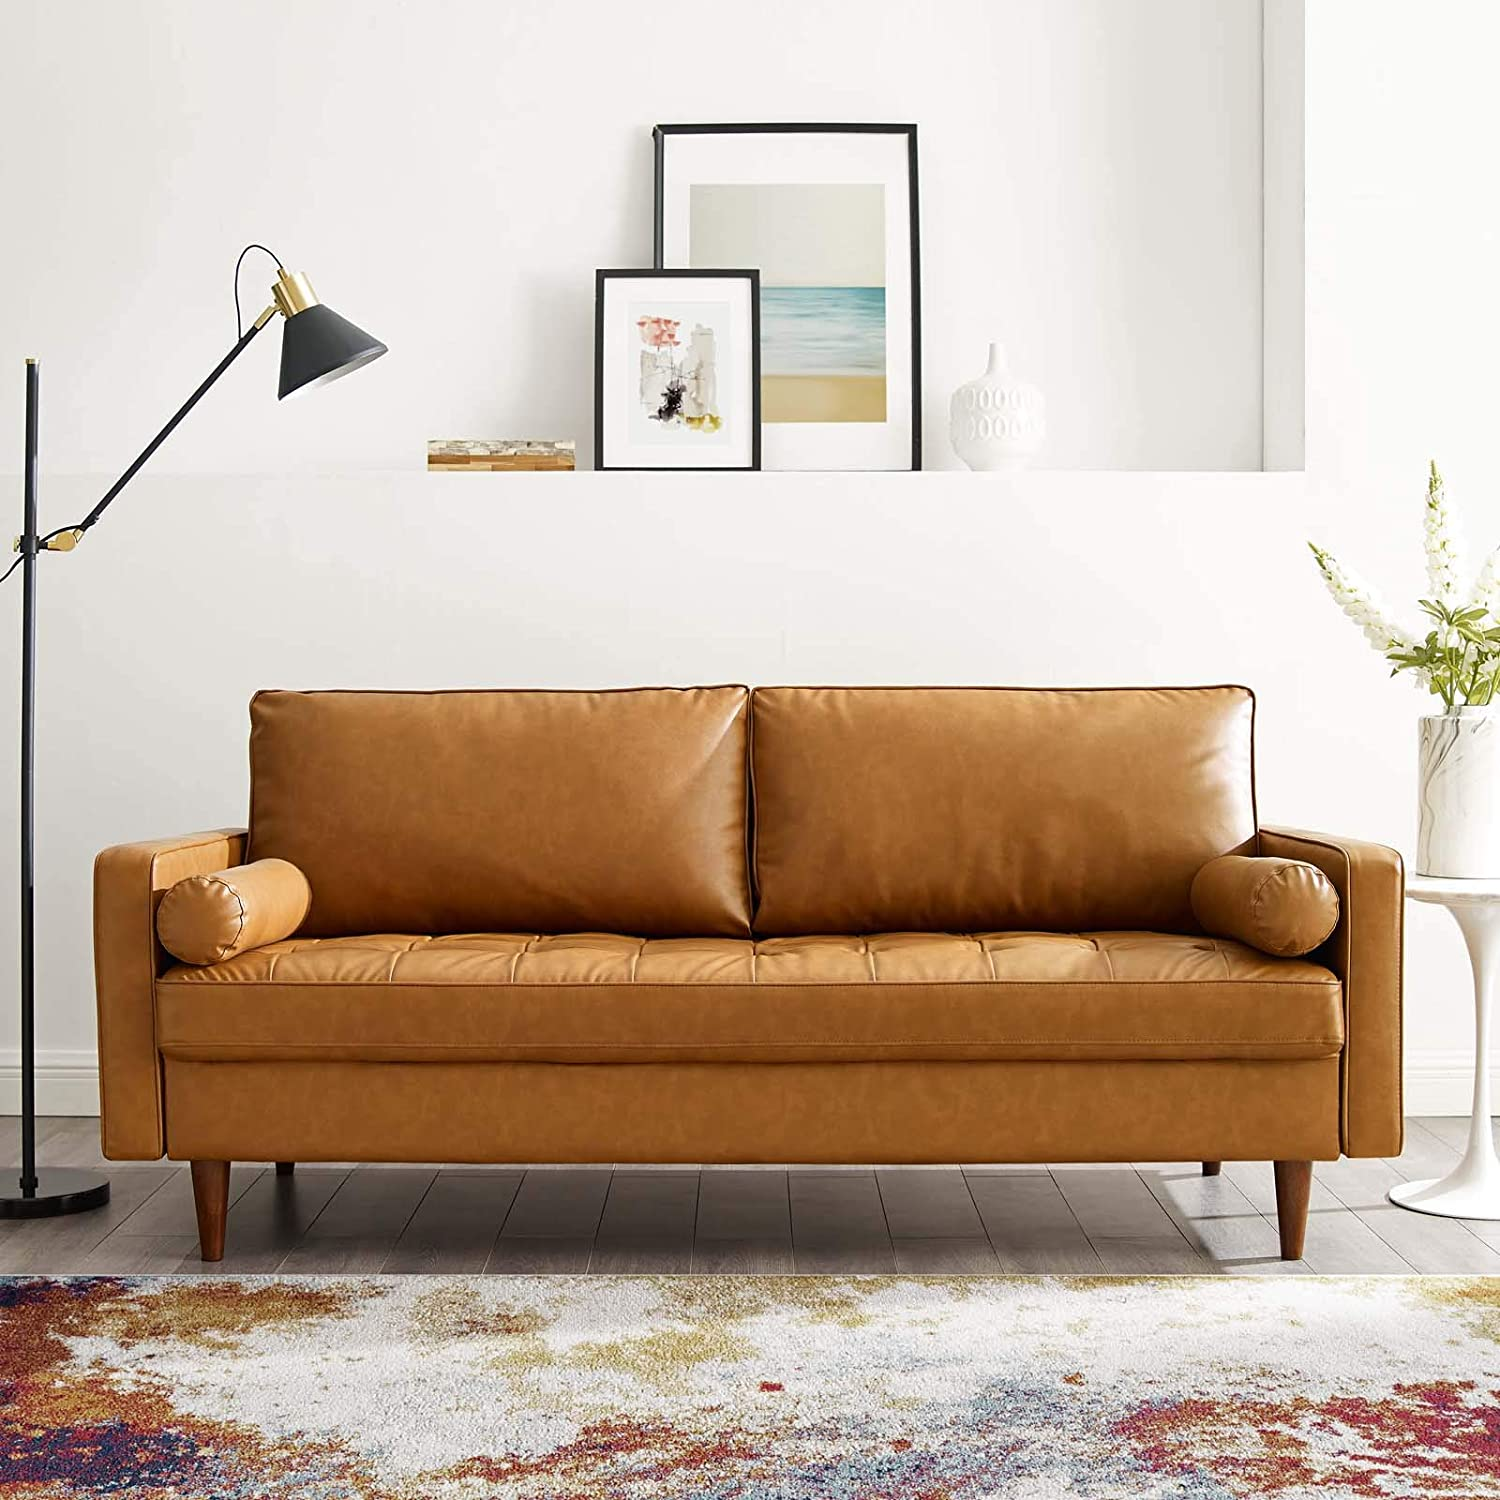 mid-century-modern-small-sofa-for-bedrooms-vegan-leather-upholstery-camel-color-side-bolster-pillows-tapered-legs